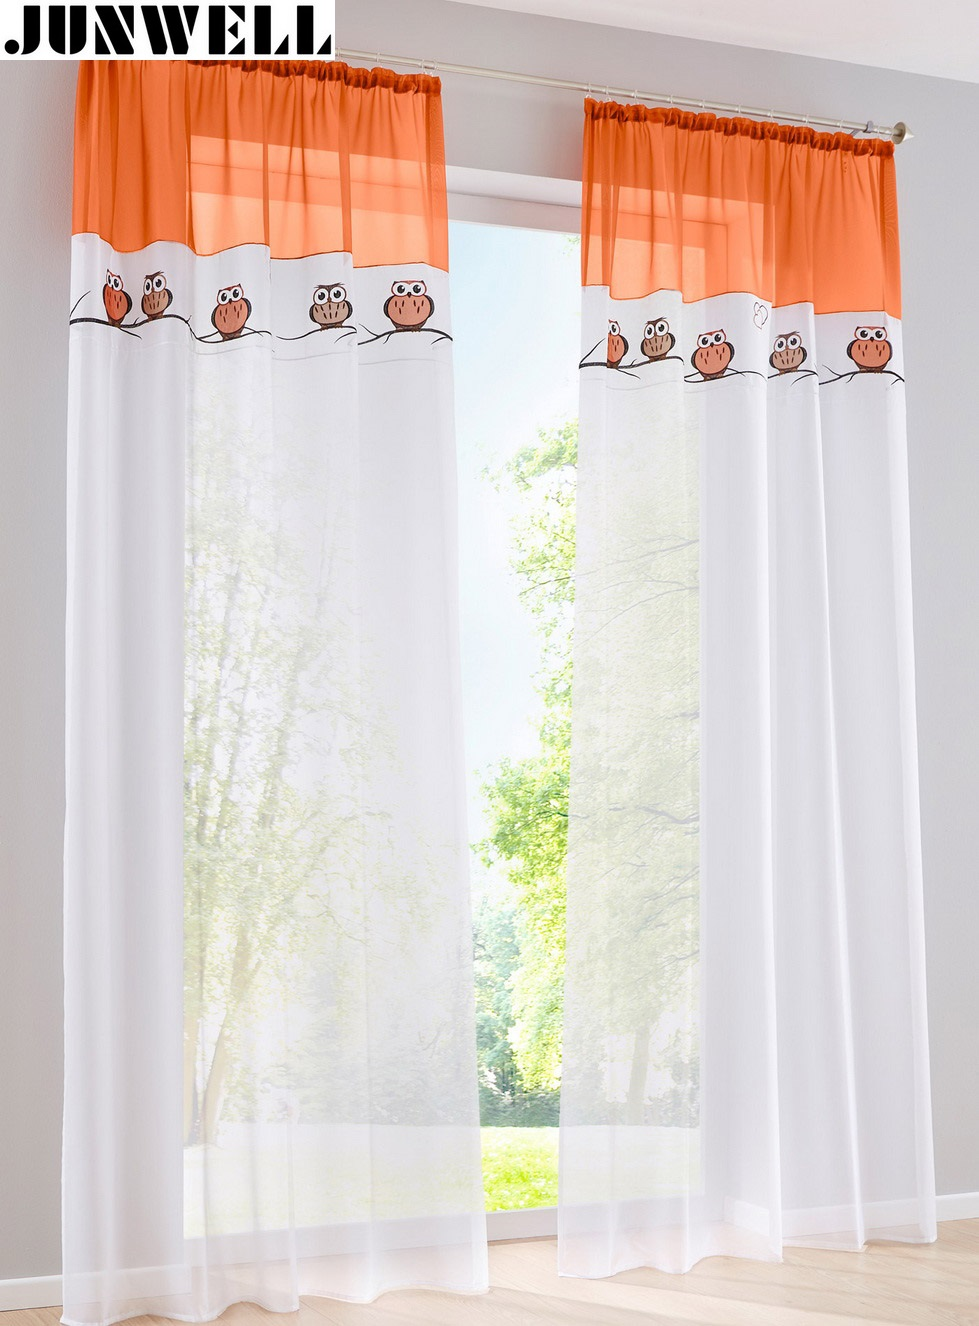 Voile Curtain Embroidery Living-Room European Tab-Top-Panel Balcony Home-Wave 1PC Owl title=